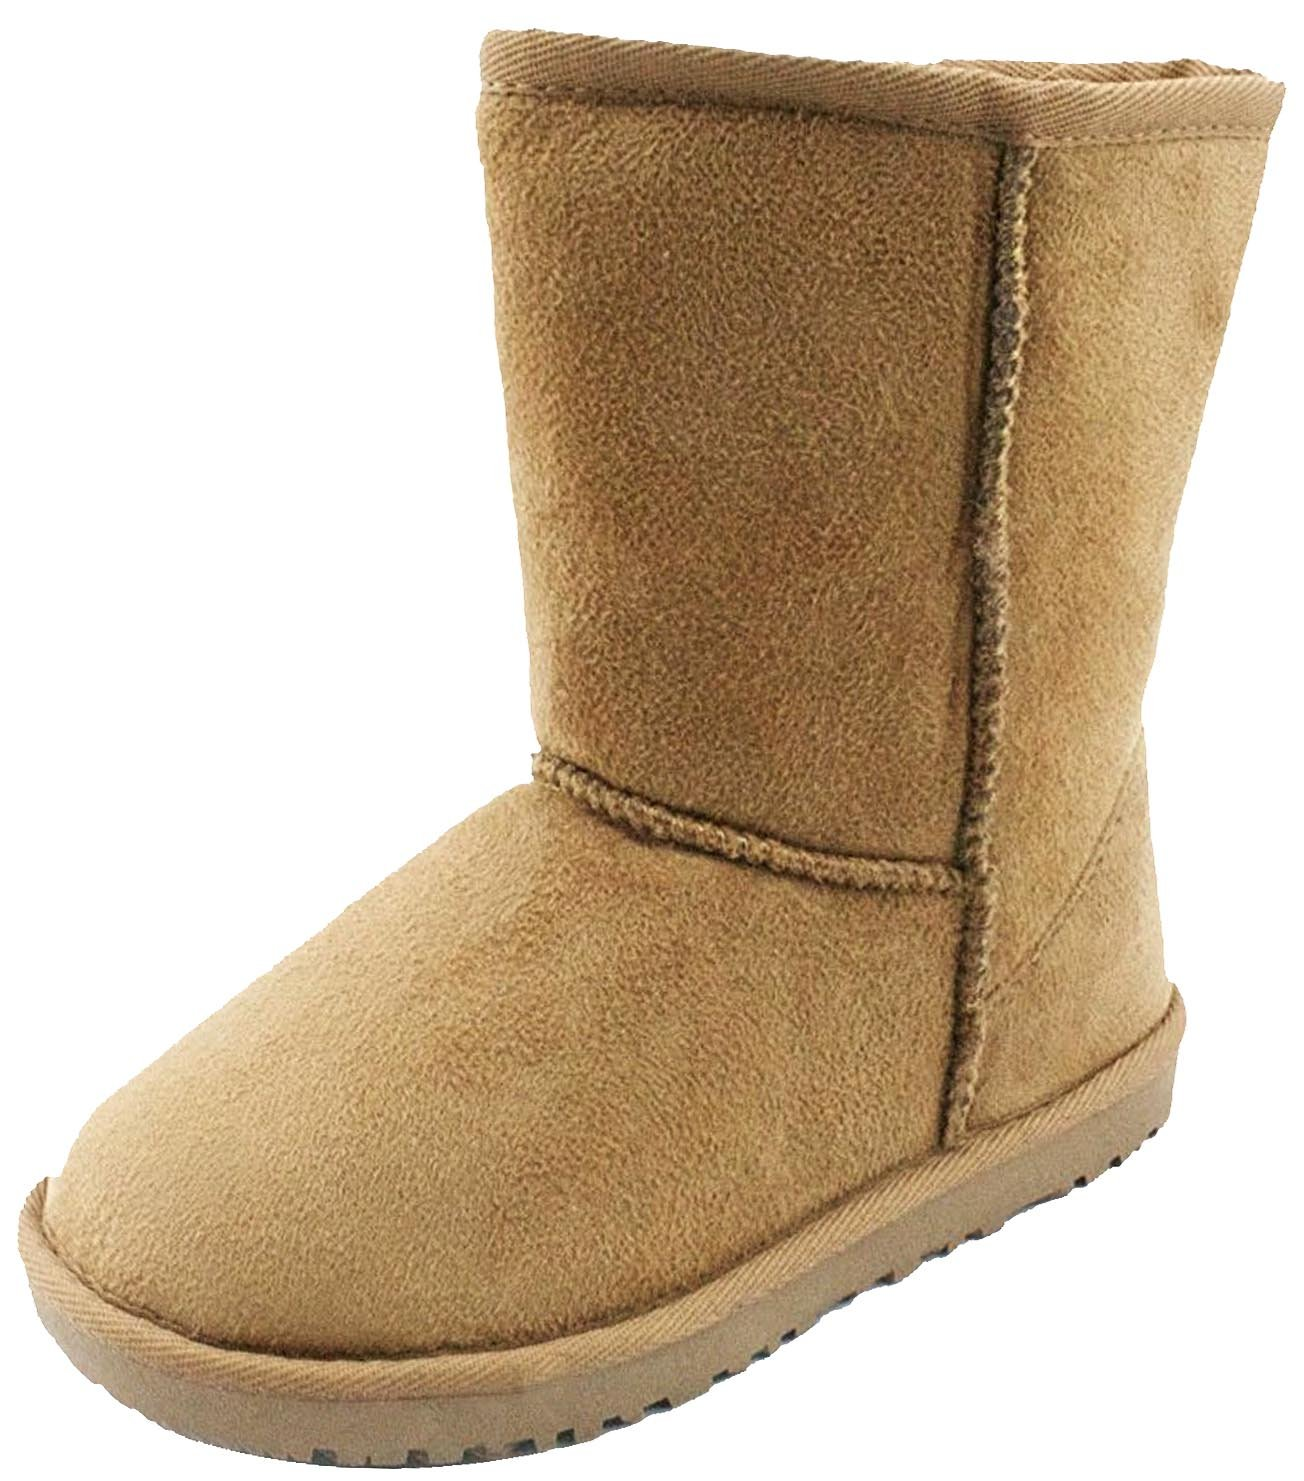 Winter Boots (9 M US Toddler, 08-Khi)